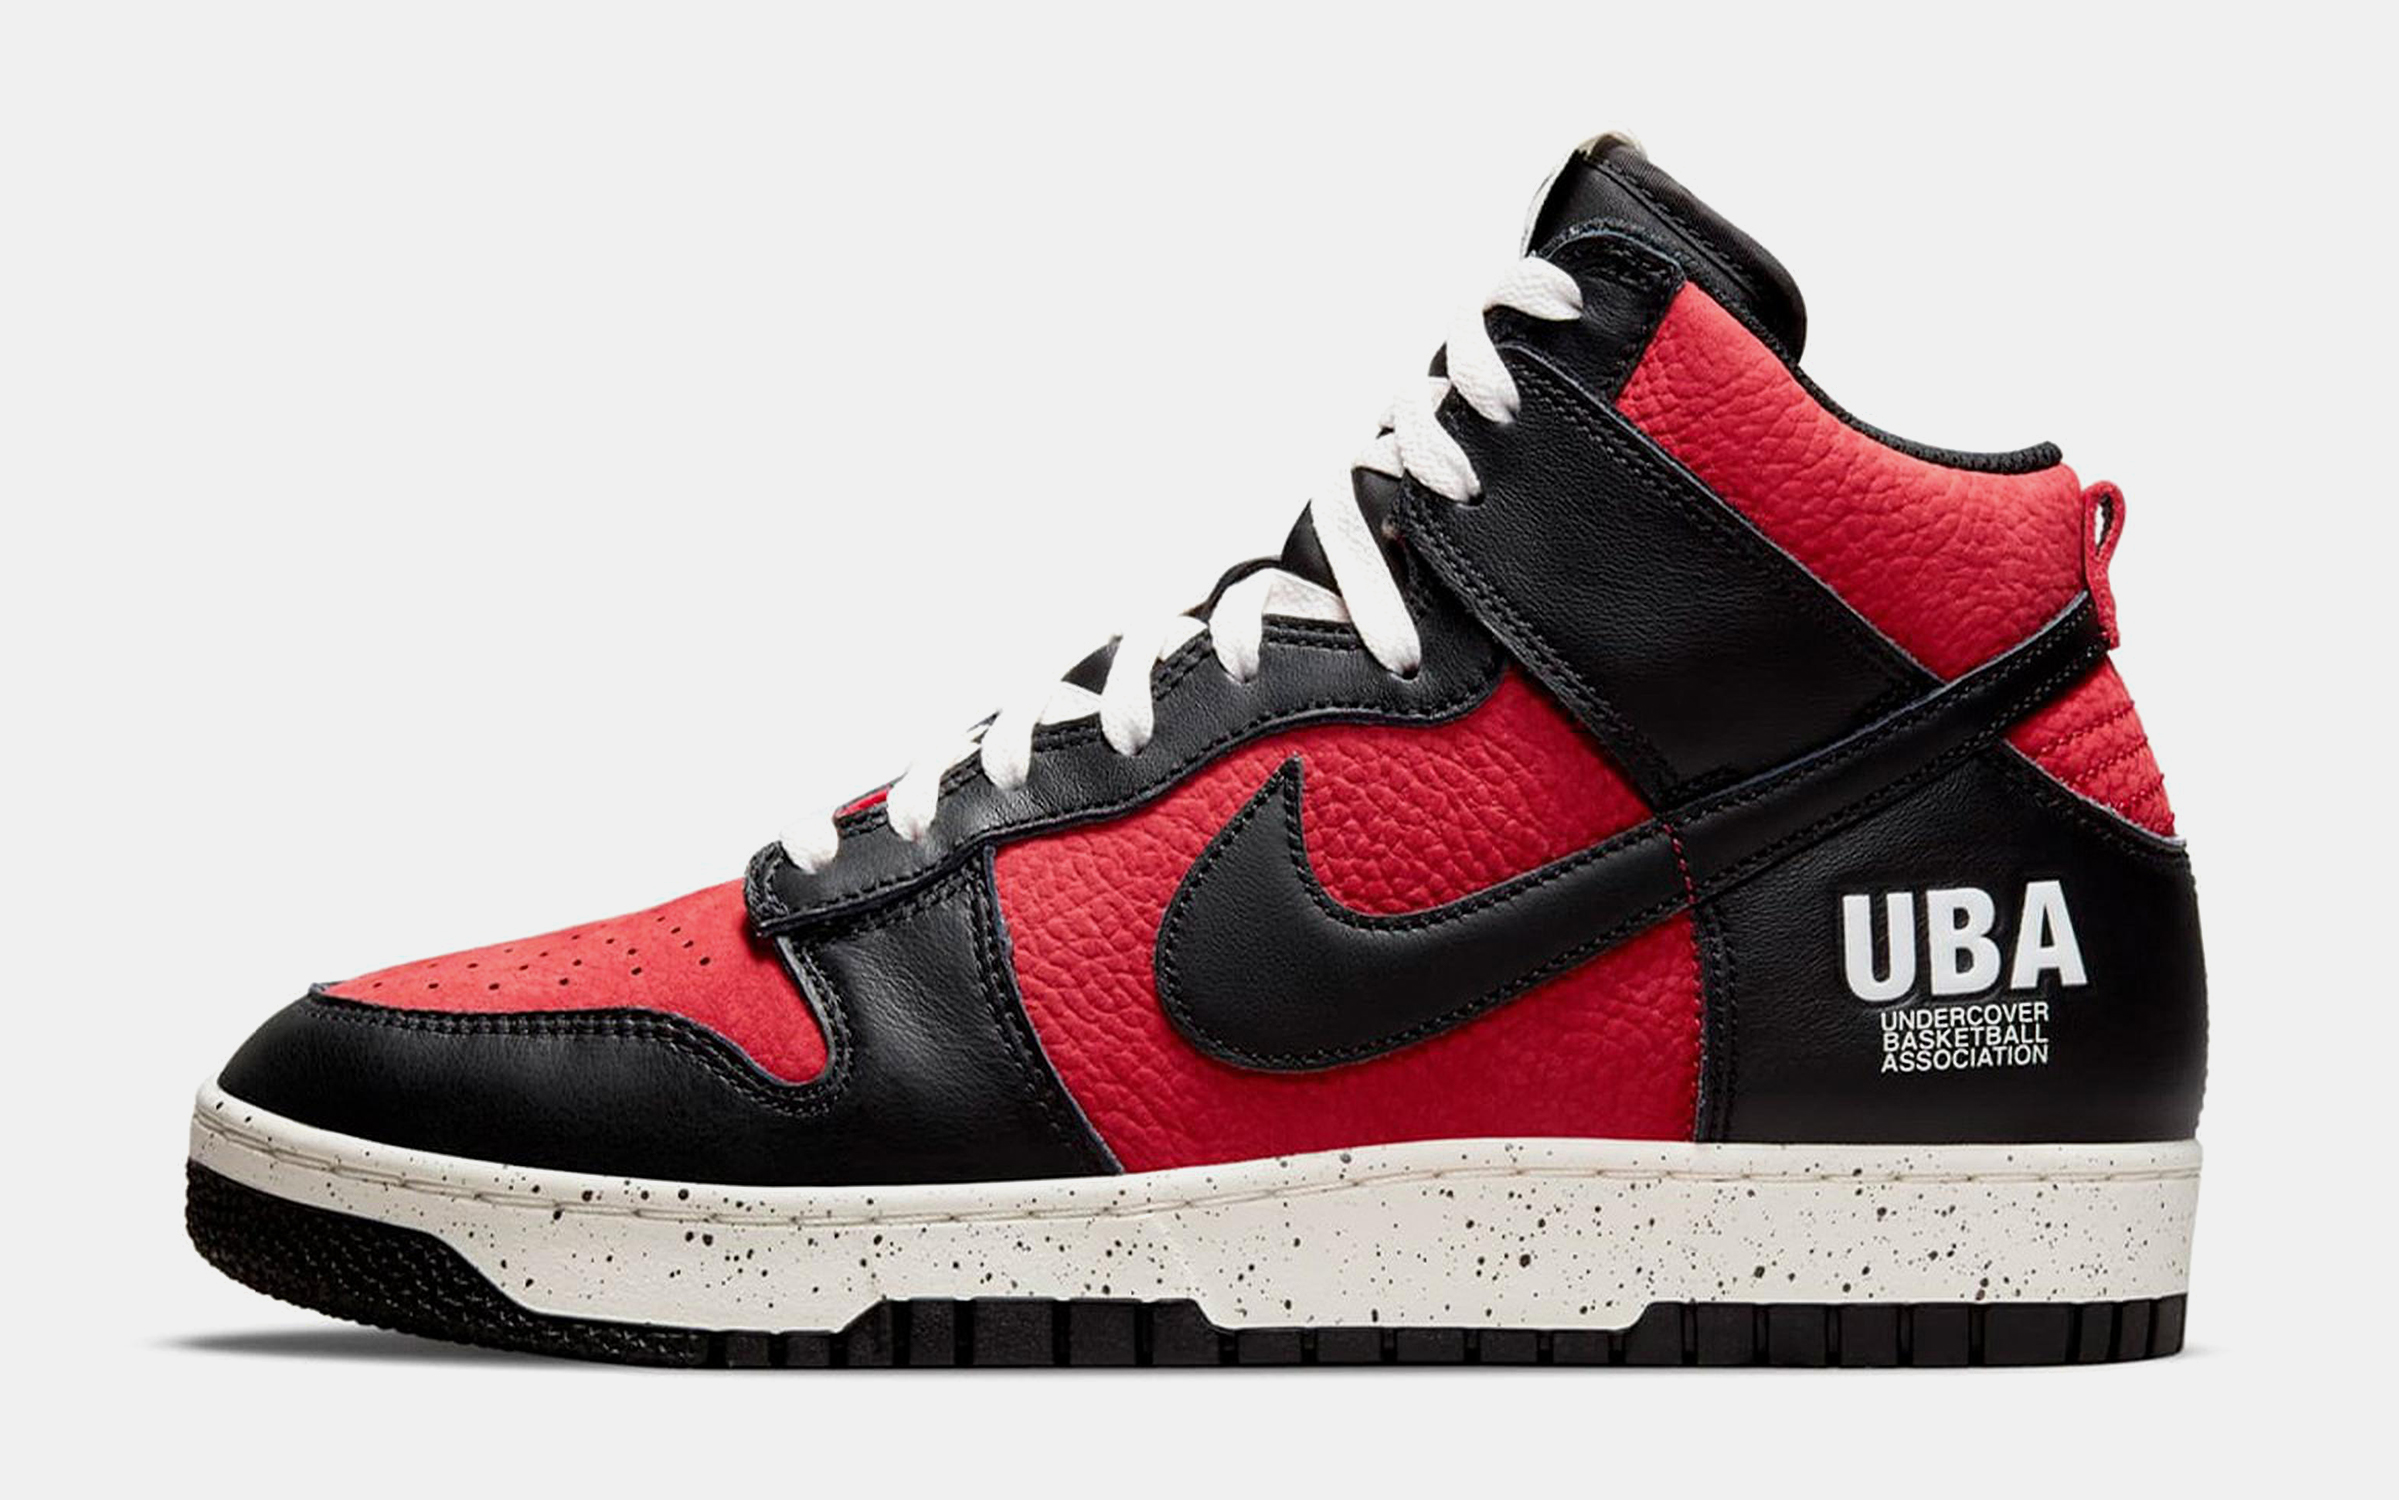 Nike Dunk High 1985 x UNDERCOVER Gym Red Sneaker